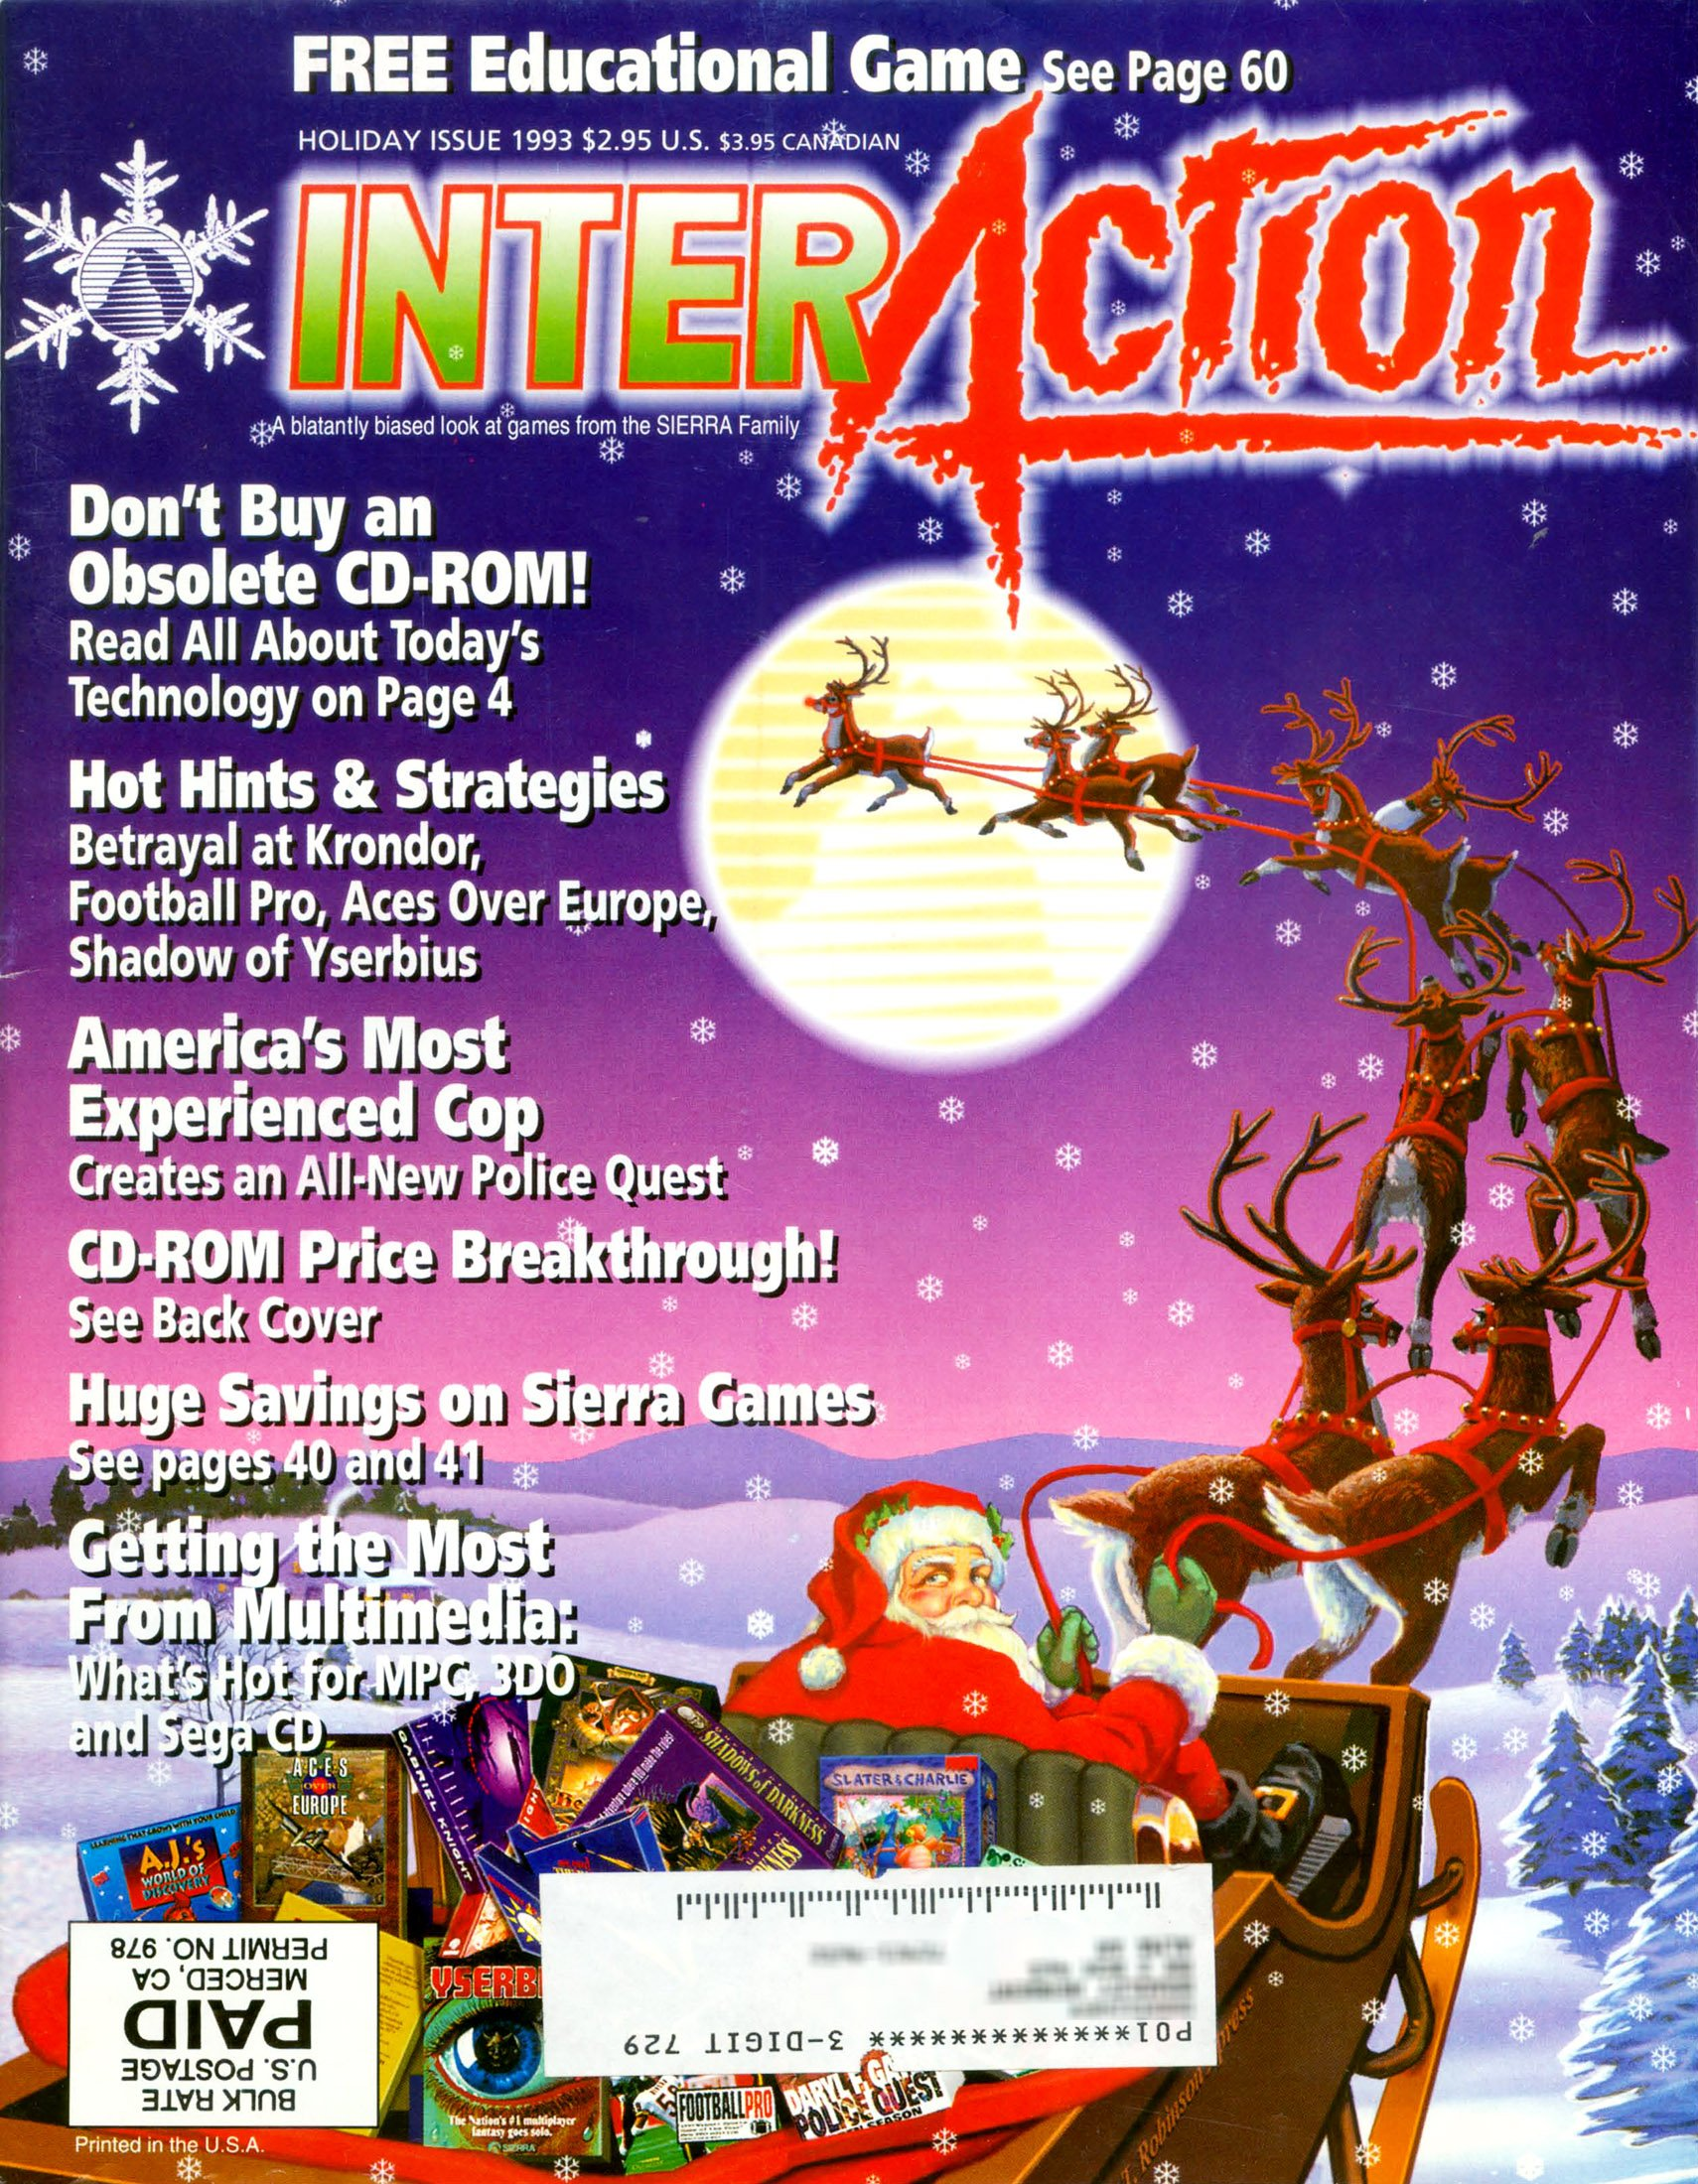 InterAction Issue 19 (Volume 6 Number 3) Holiday 1993